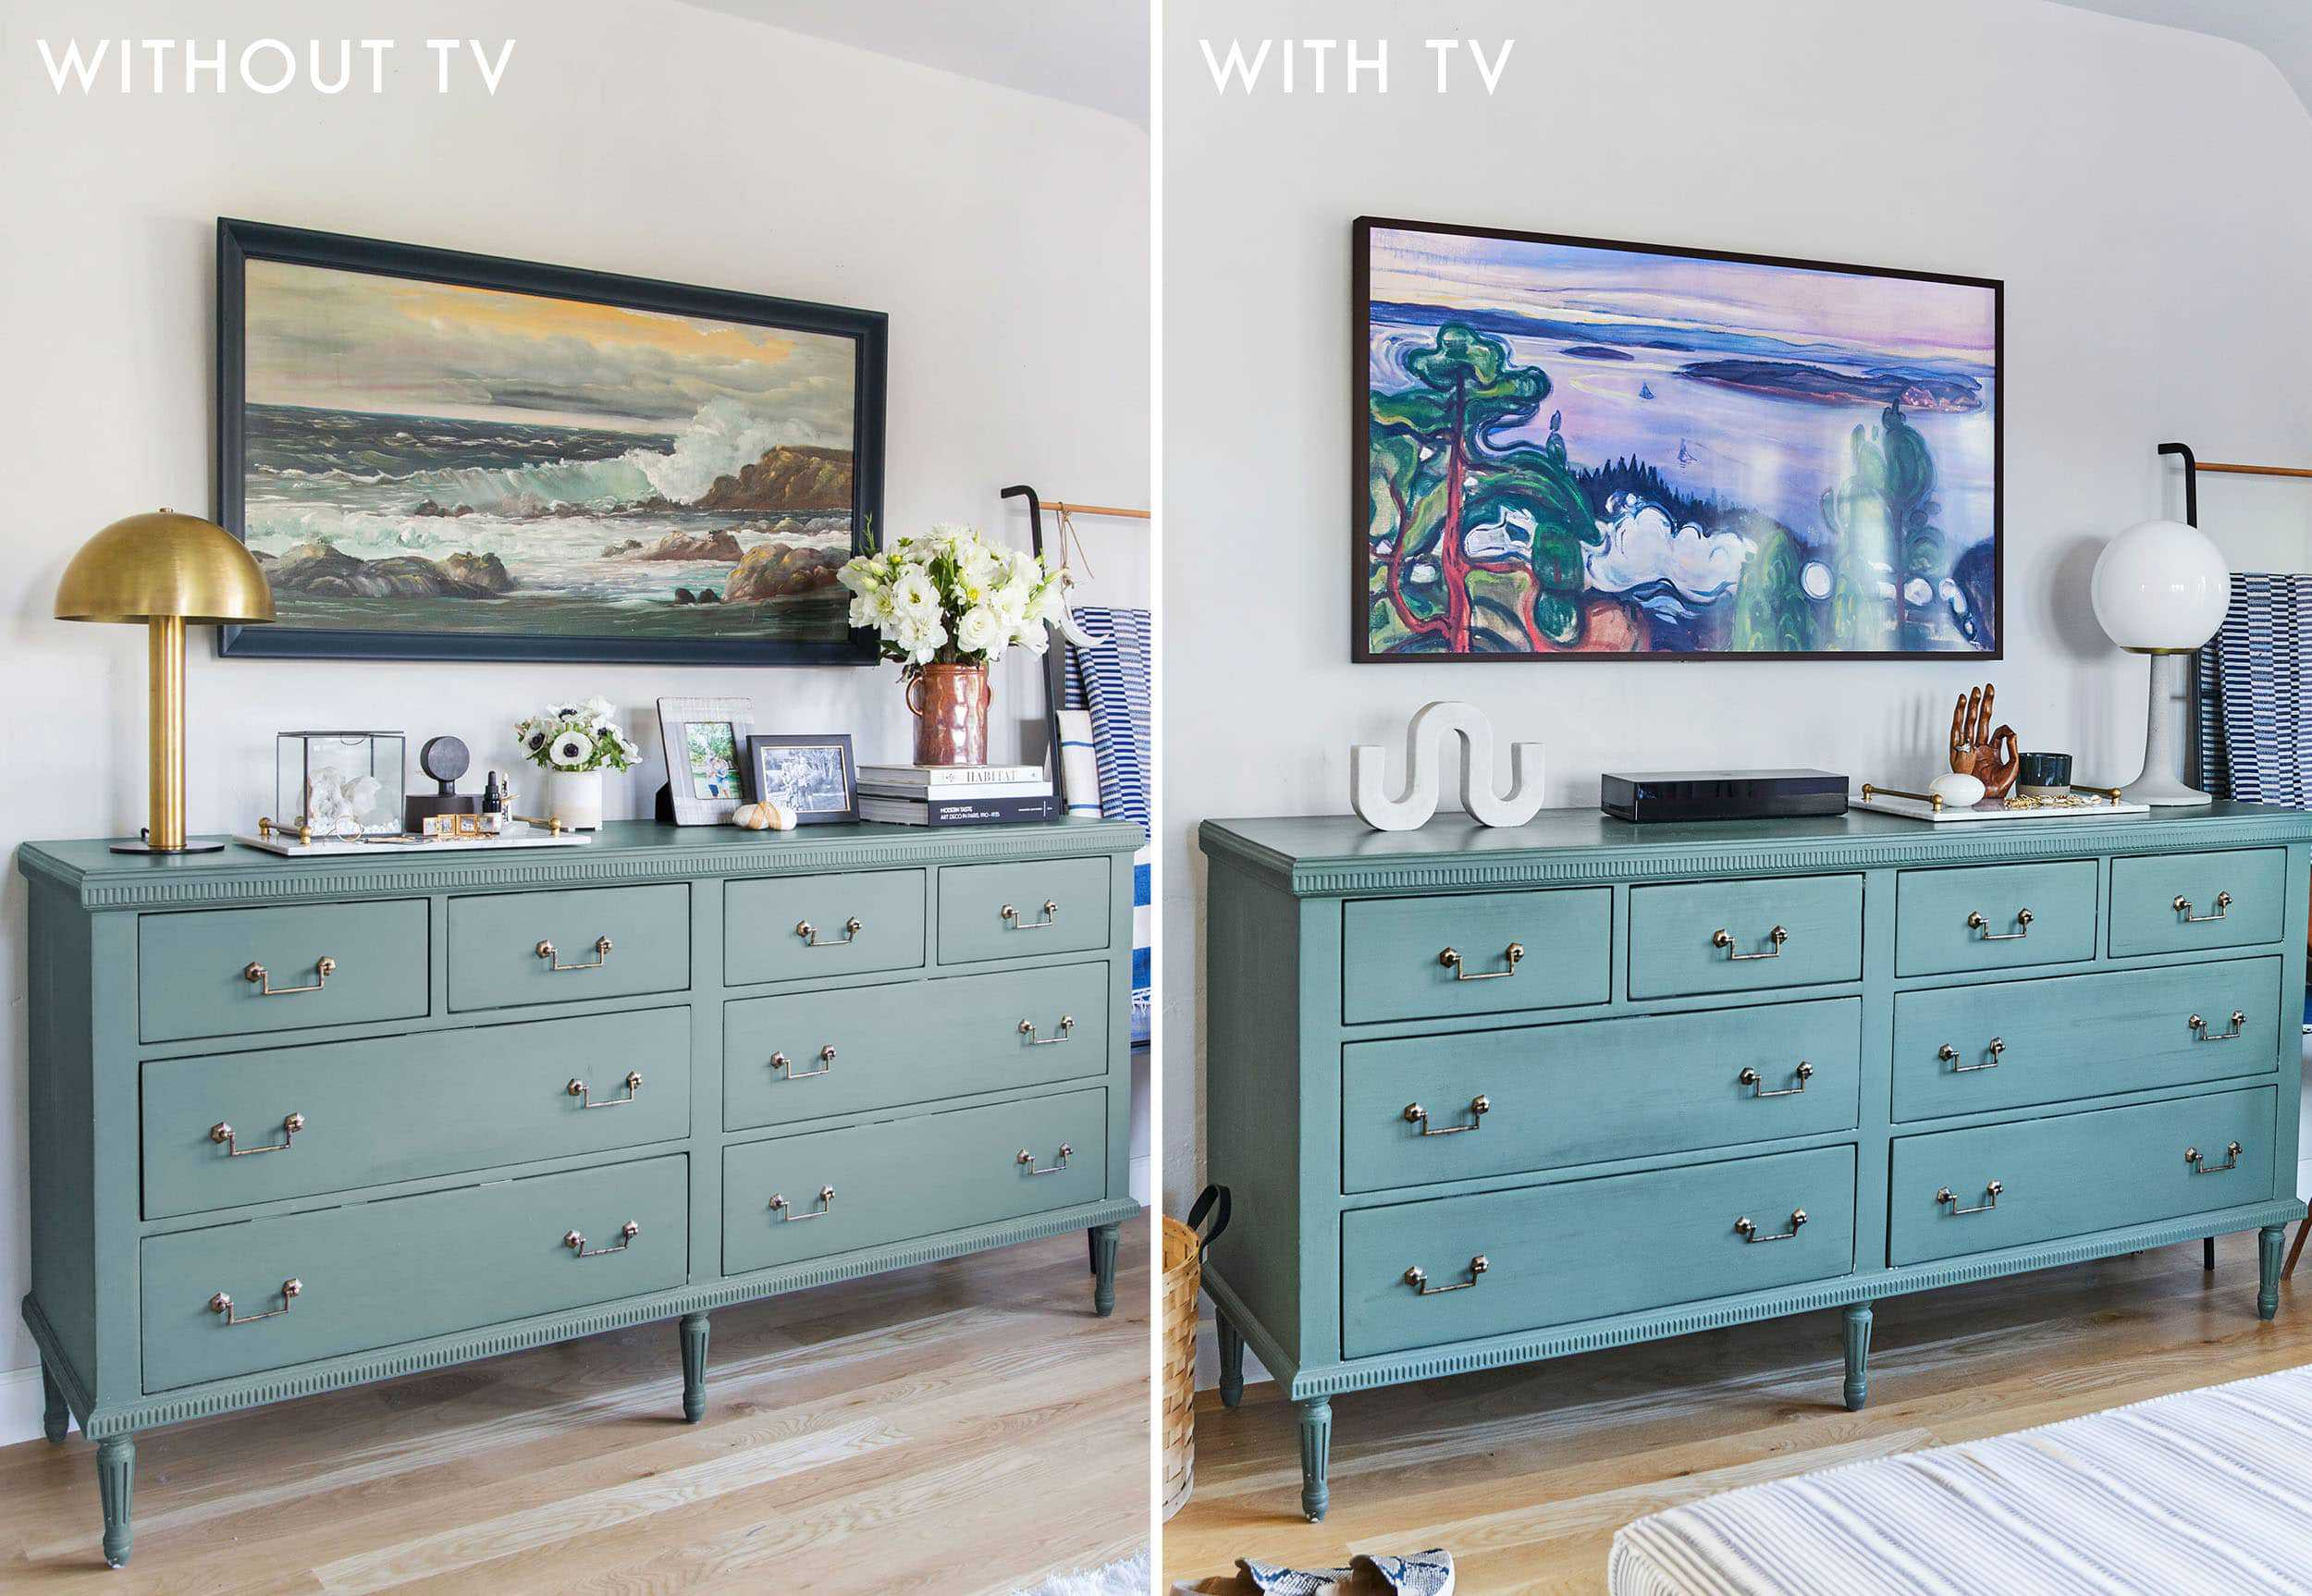 Emily Henderon Bedroom Update With Tv Tv Side By Side